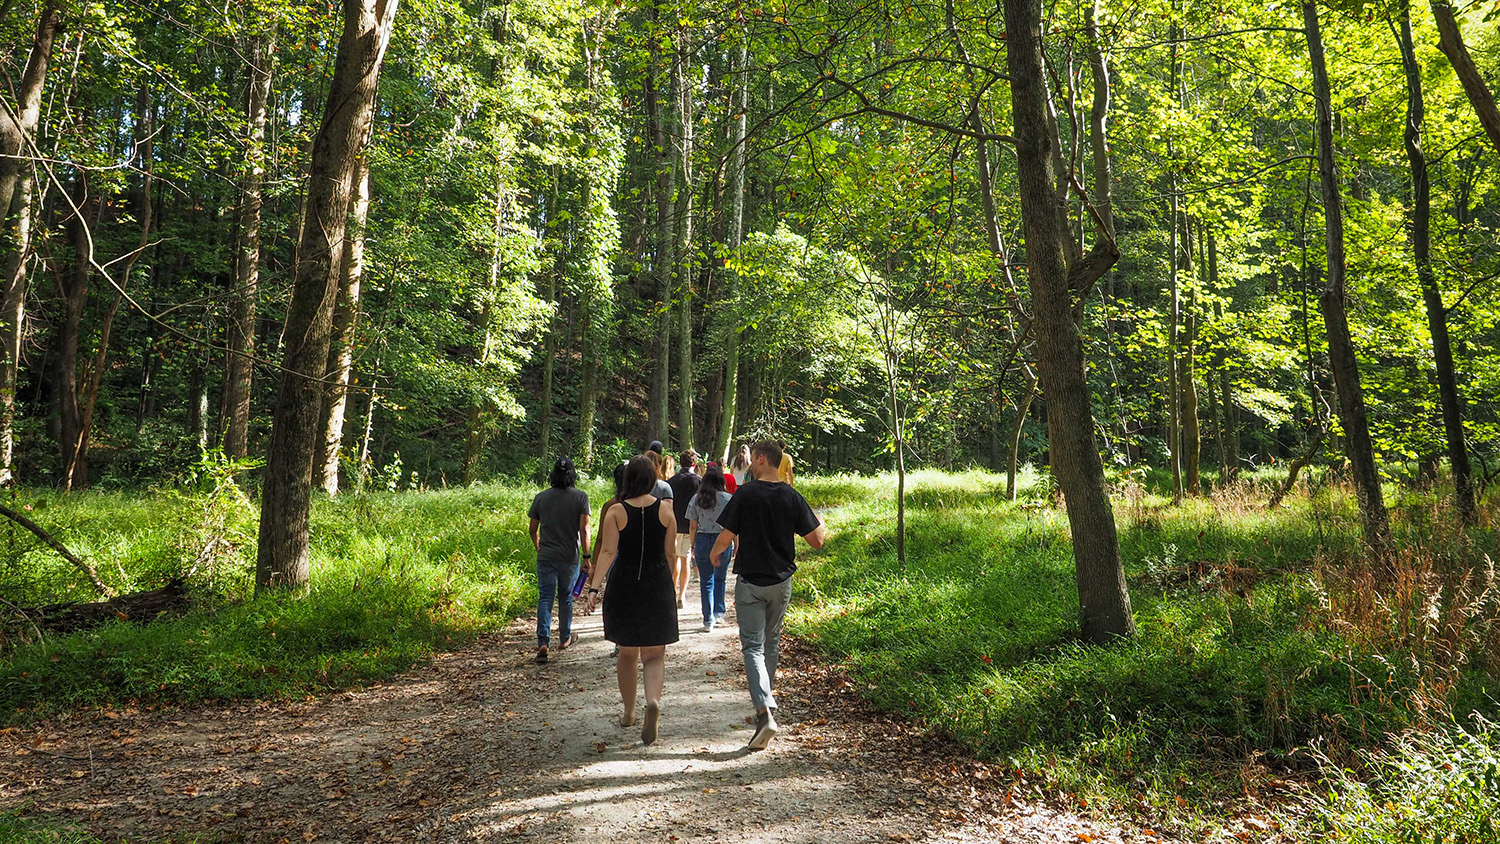 People walking along a nature trail